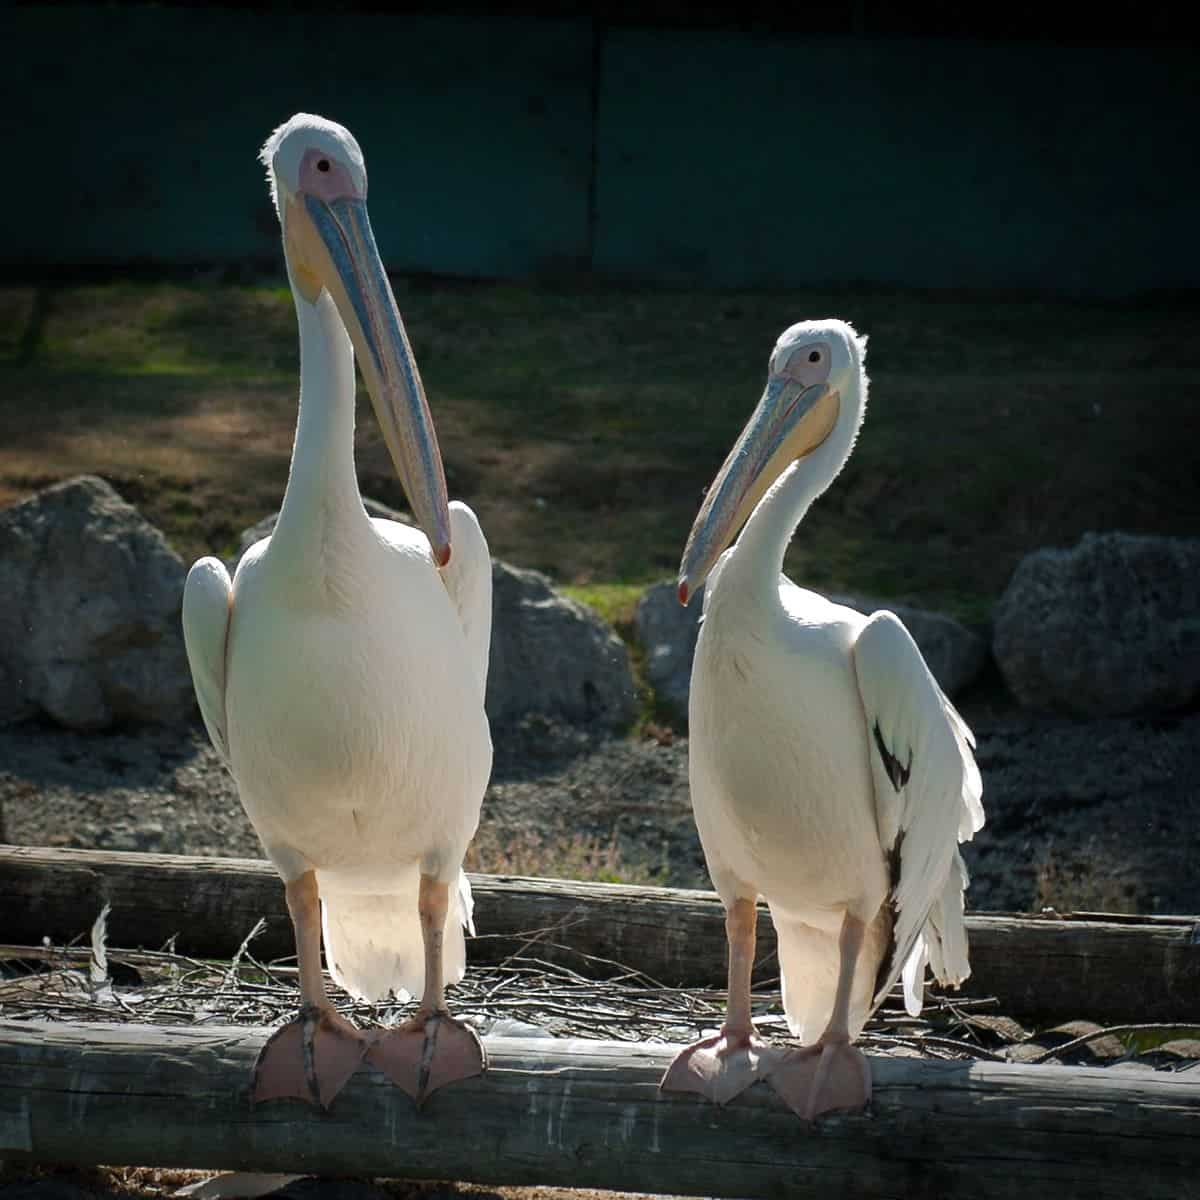 A photo of two similar-looking pelicans side by side, the one on the right is slightly smaller.